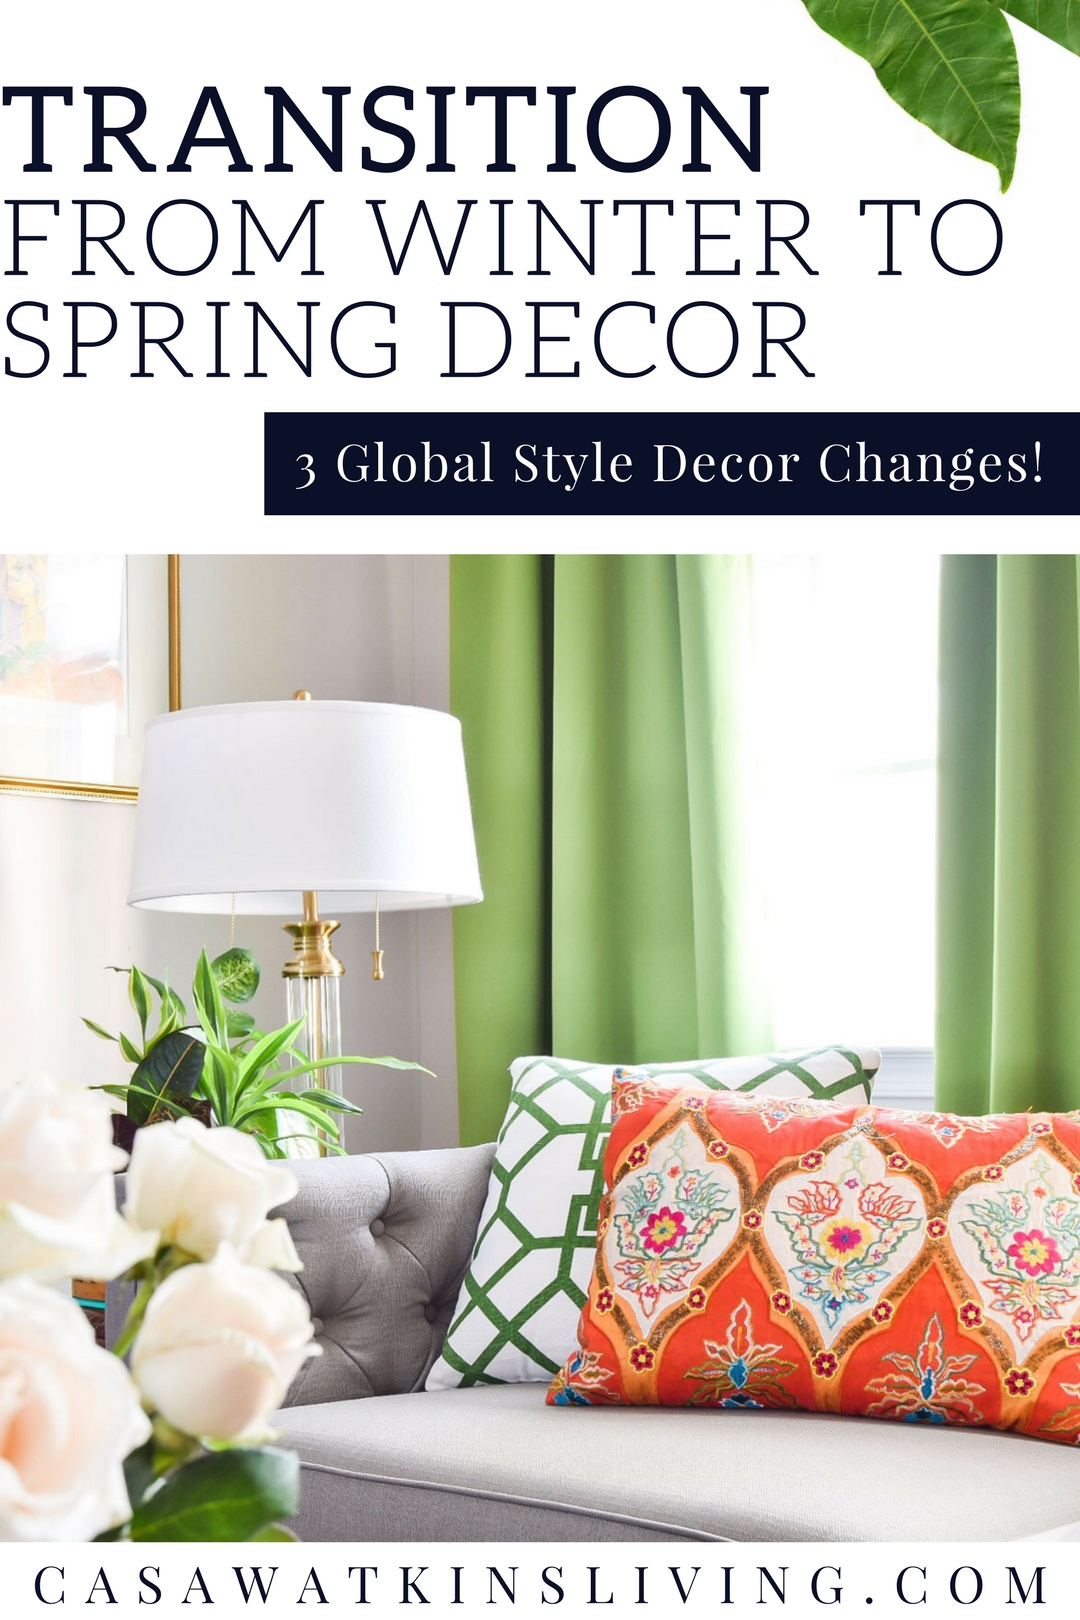 3 quick ways to transition decor from spring to winter with global style